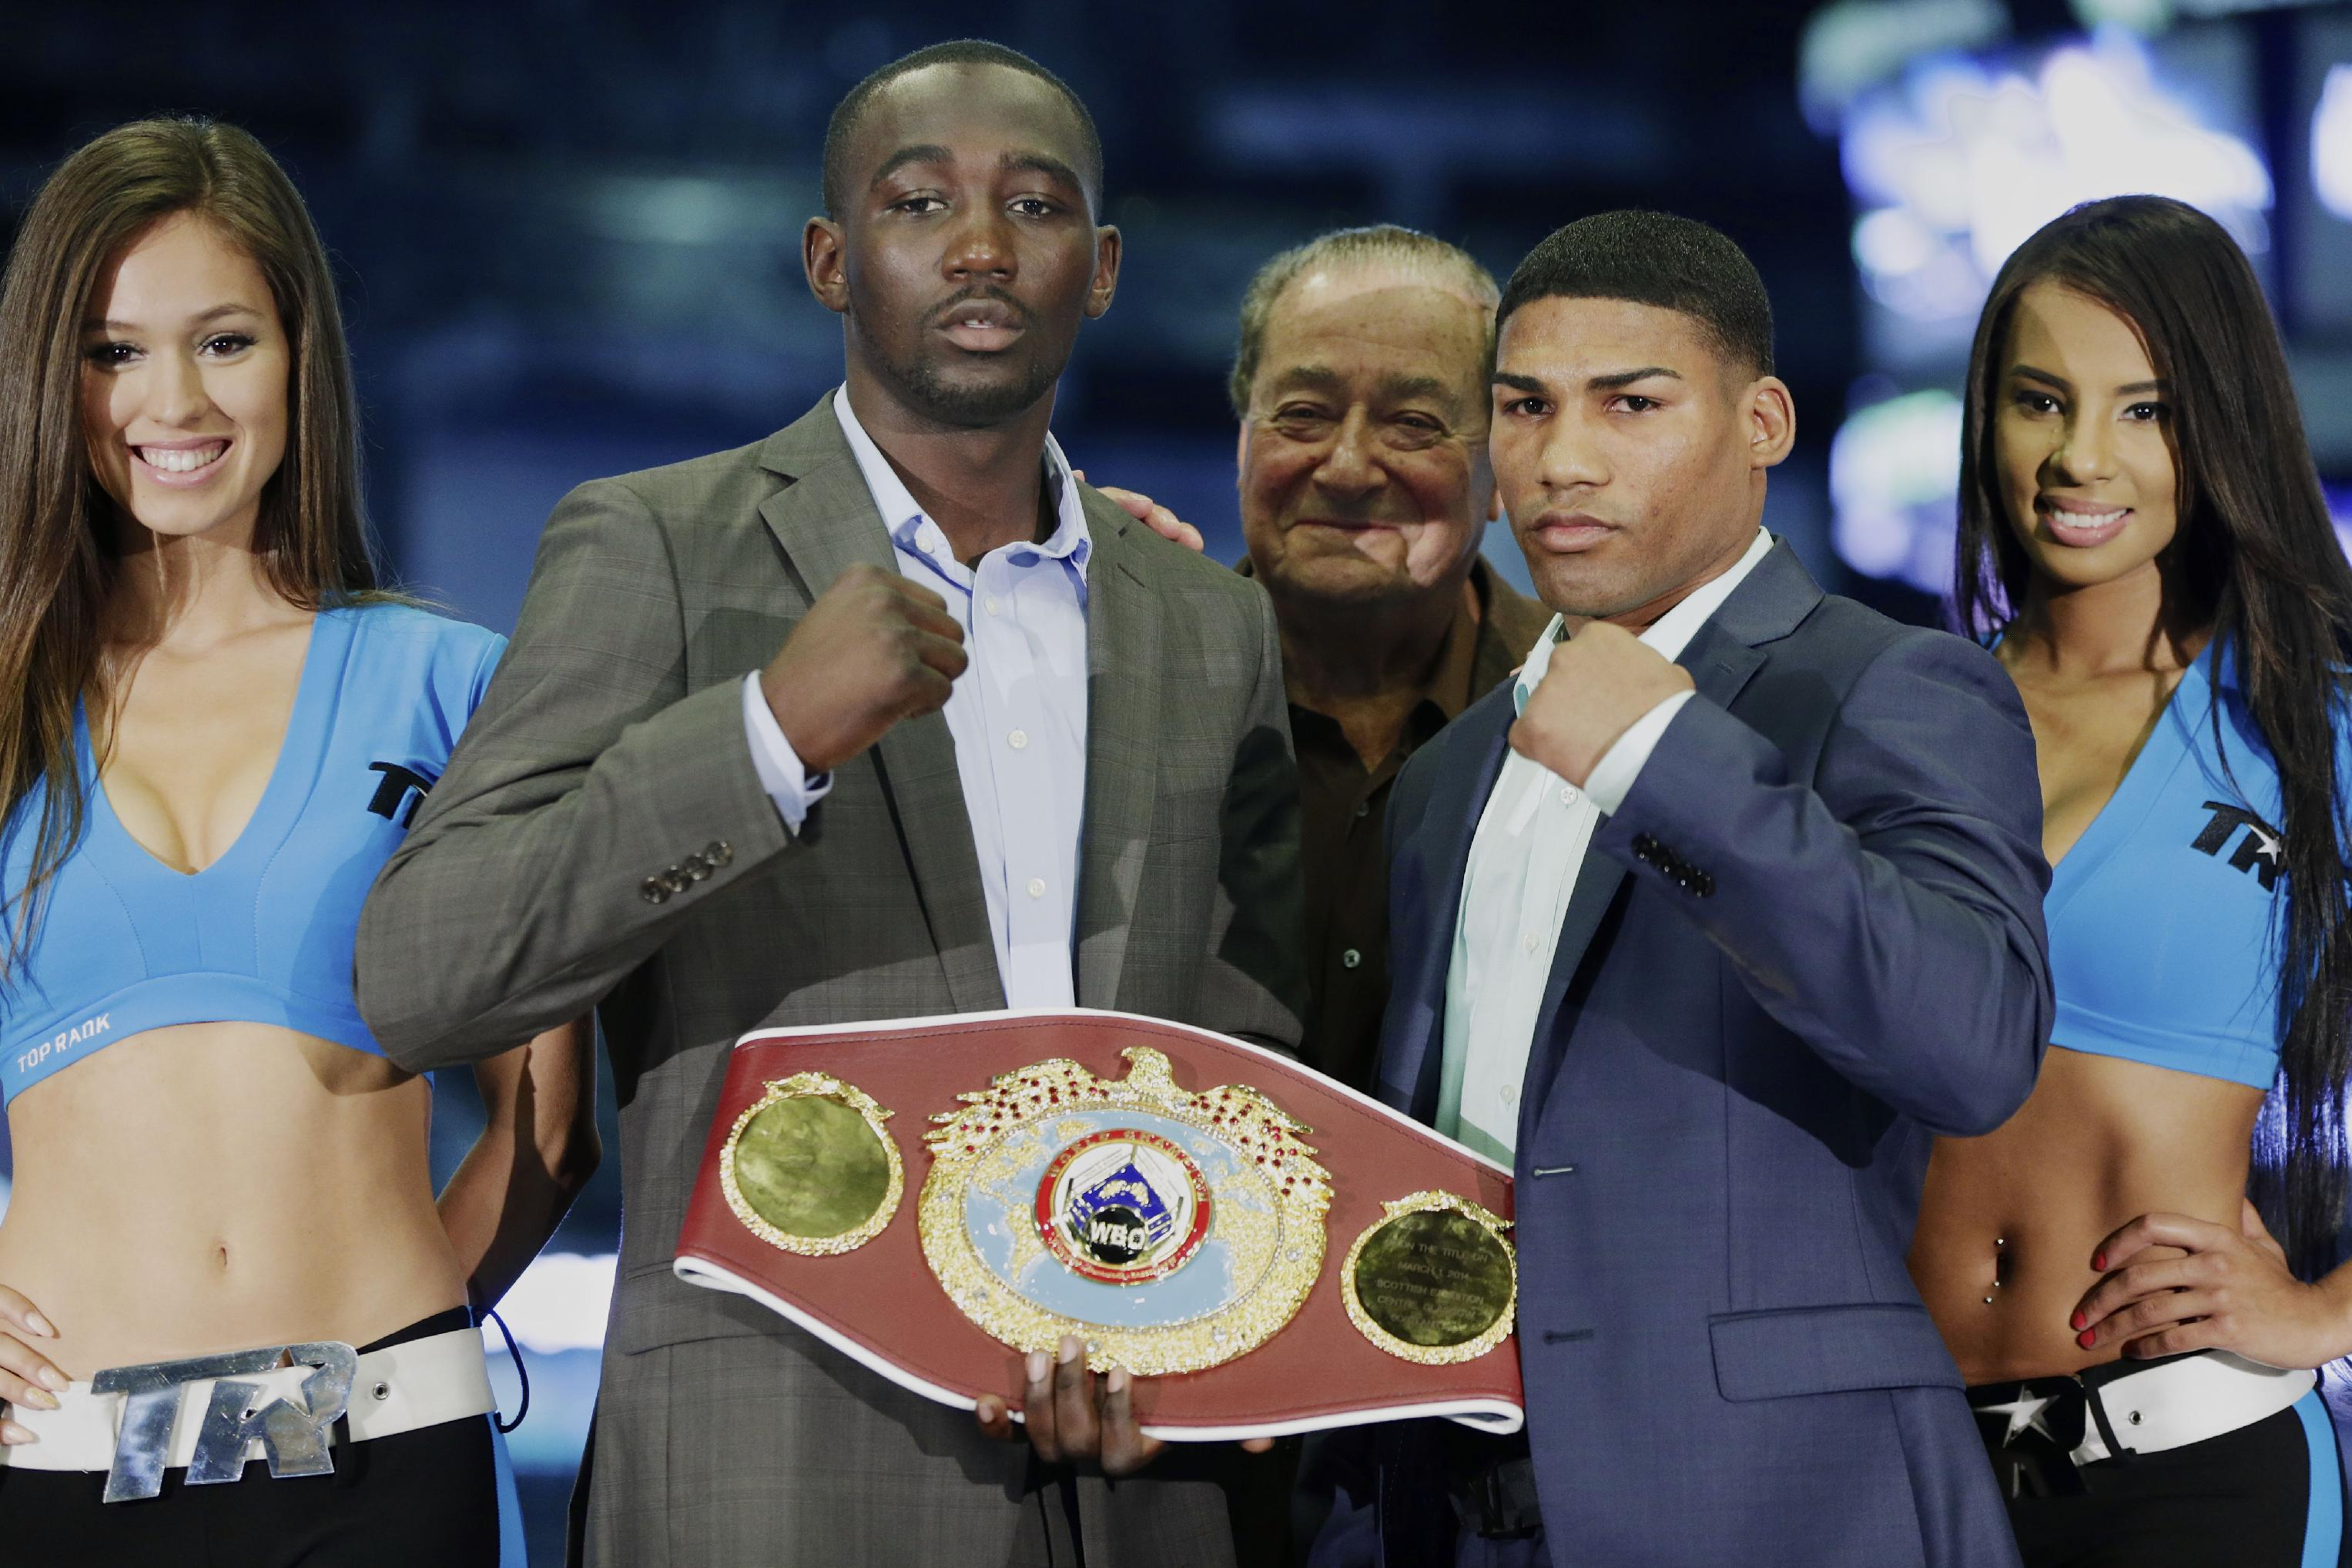 Records are same, but Gamboa says his is better